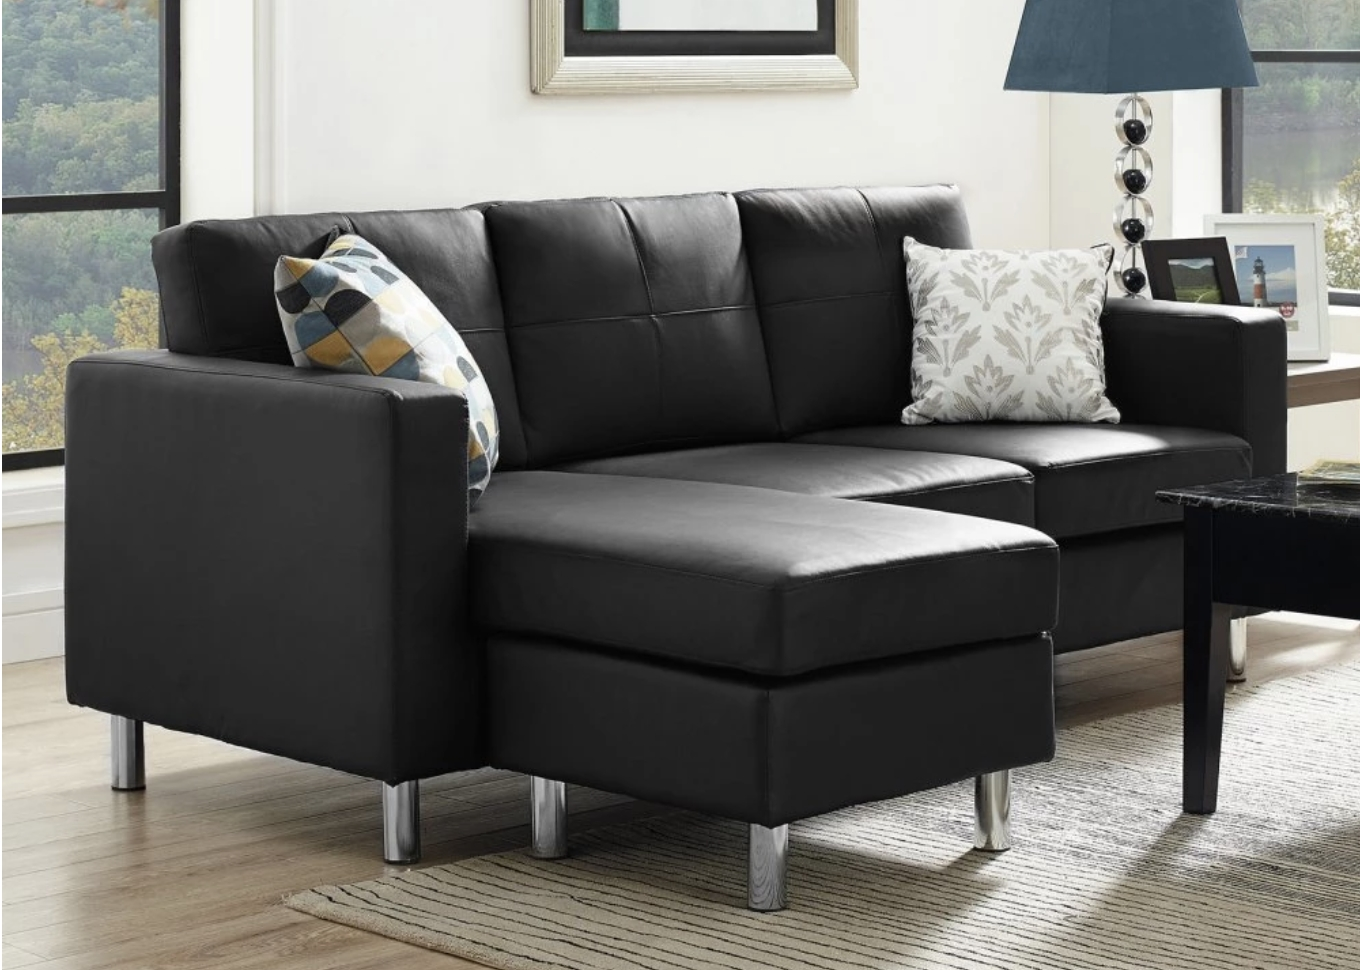 75 Modern Sectional Sofas For Small Spaces (2018) For Sectional Sofas That Can Be Rearranged (View 1 of 10)